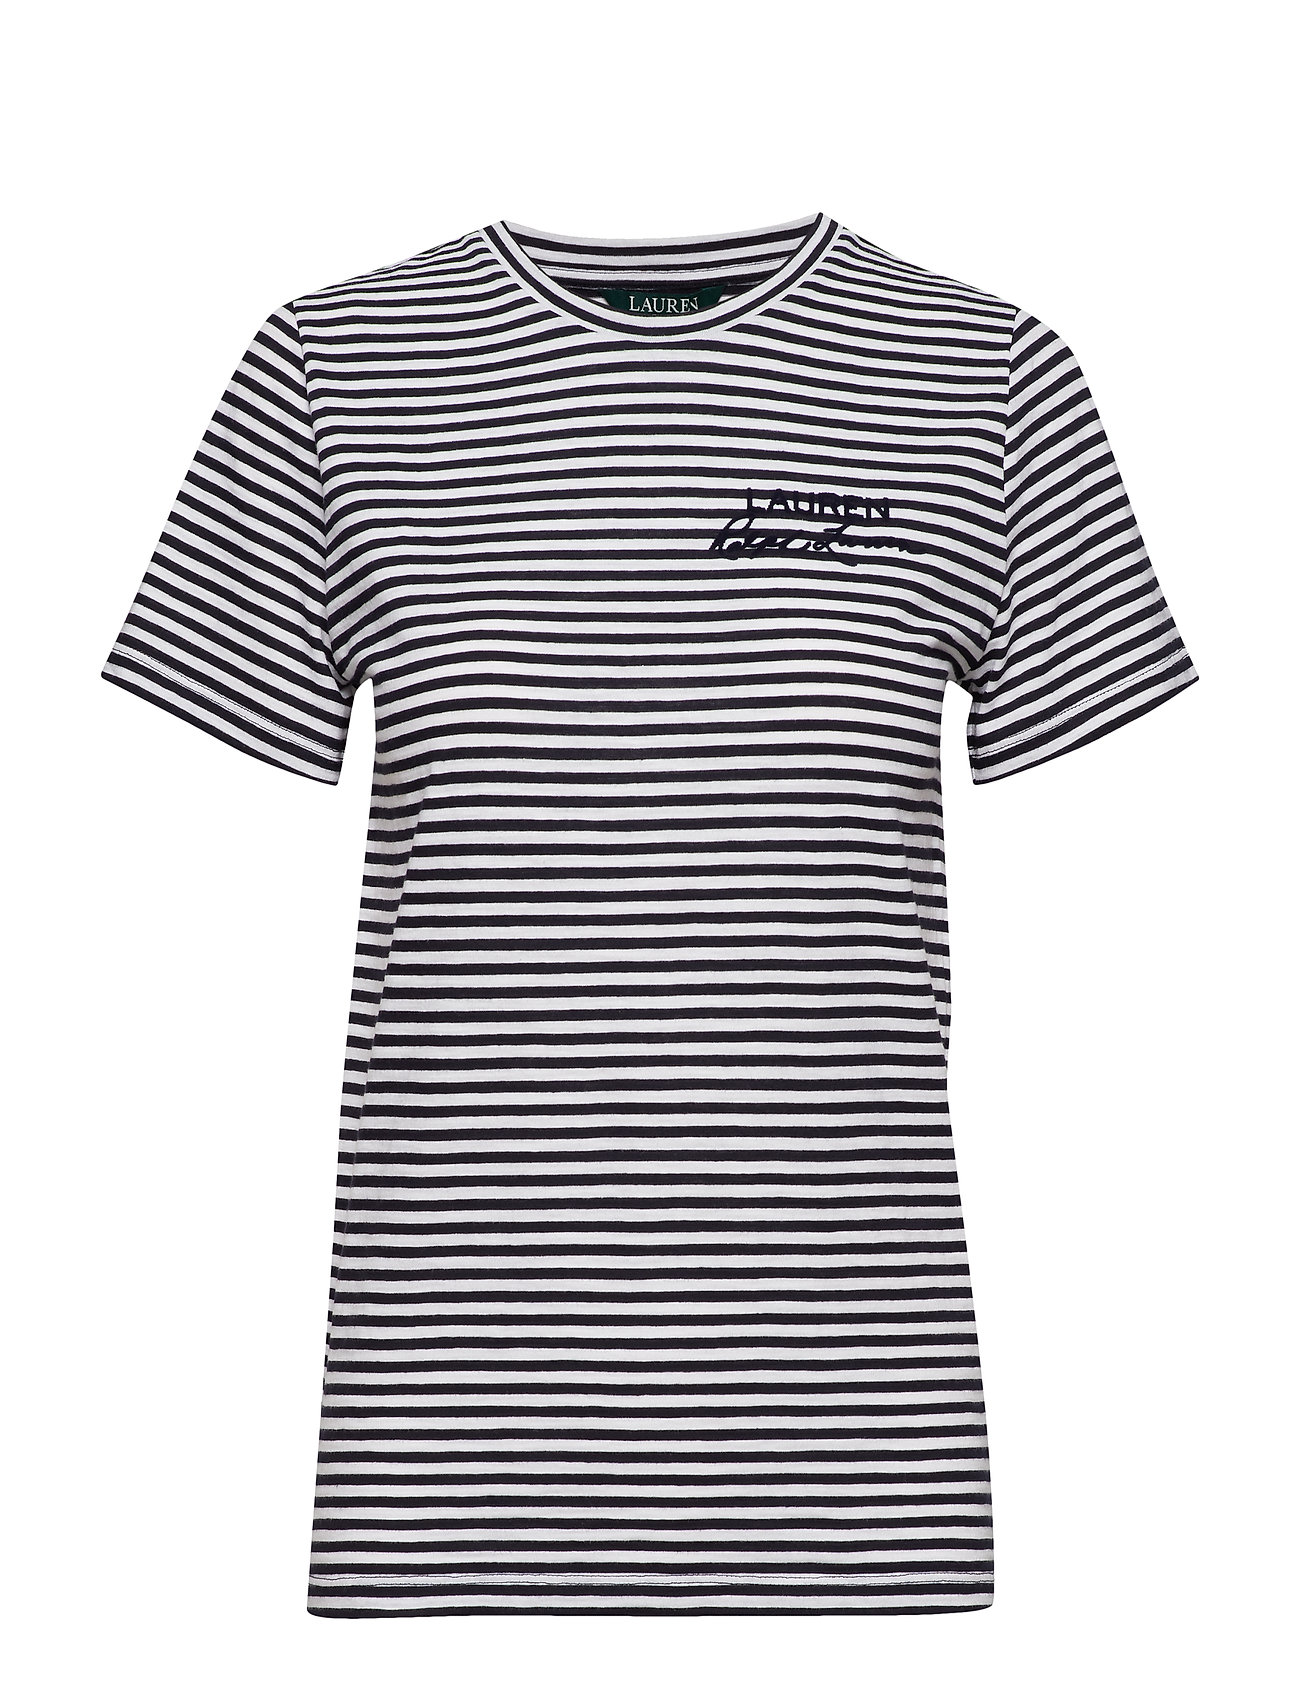 Lauren Ralph Lauren Logo Striped Cotton Tee - LAUREN NAVY/SILK